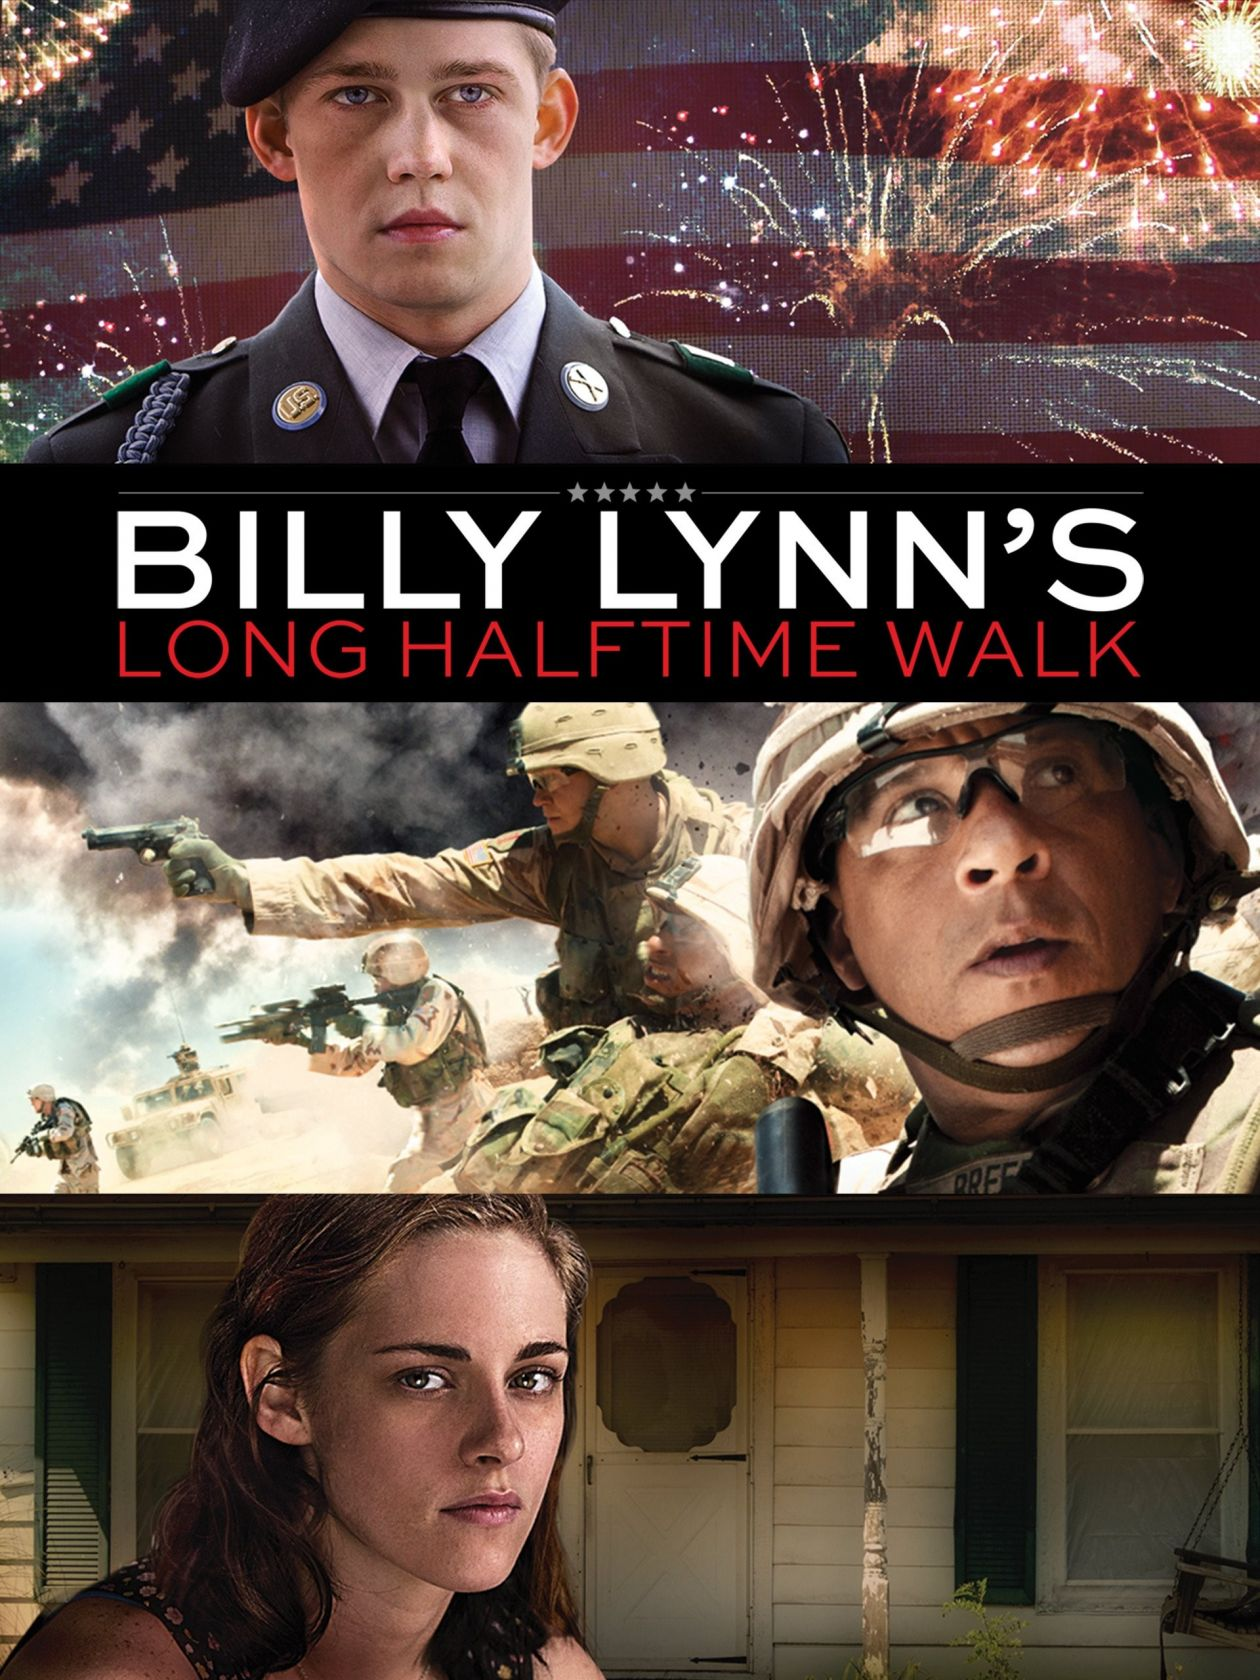 Kristen Stewart actress | Billy Lynn's Long Halftime Walk / Un jour dans la vie de Billy Lynn / Ang Lee 2016 Movie Poster Affiche film